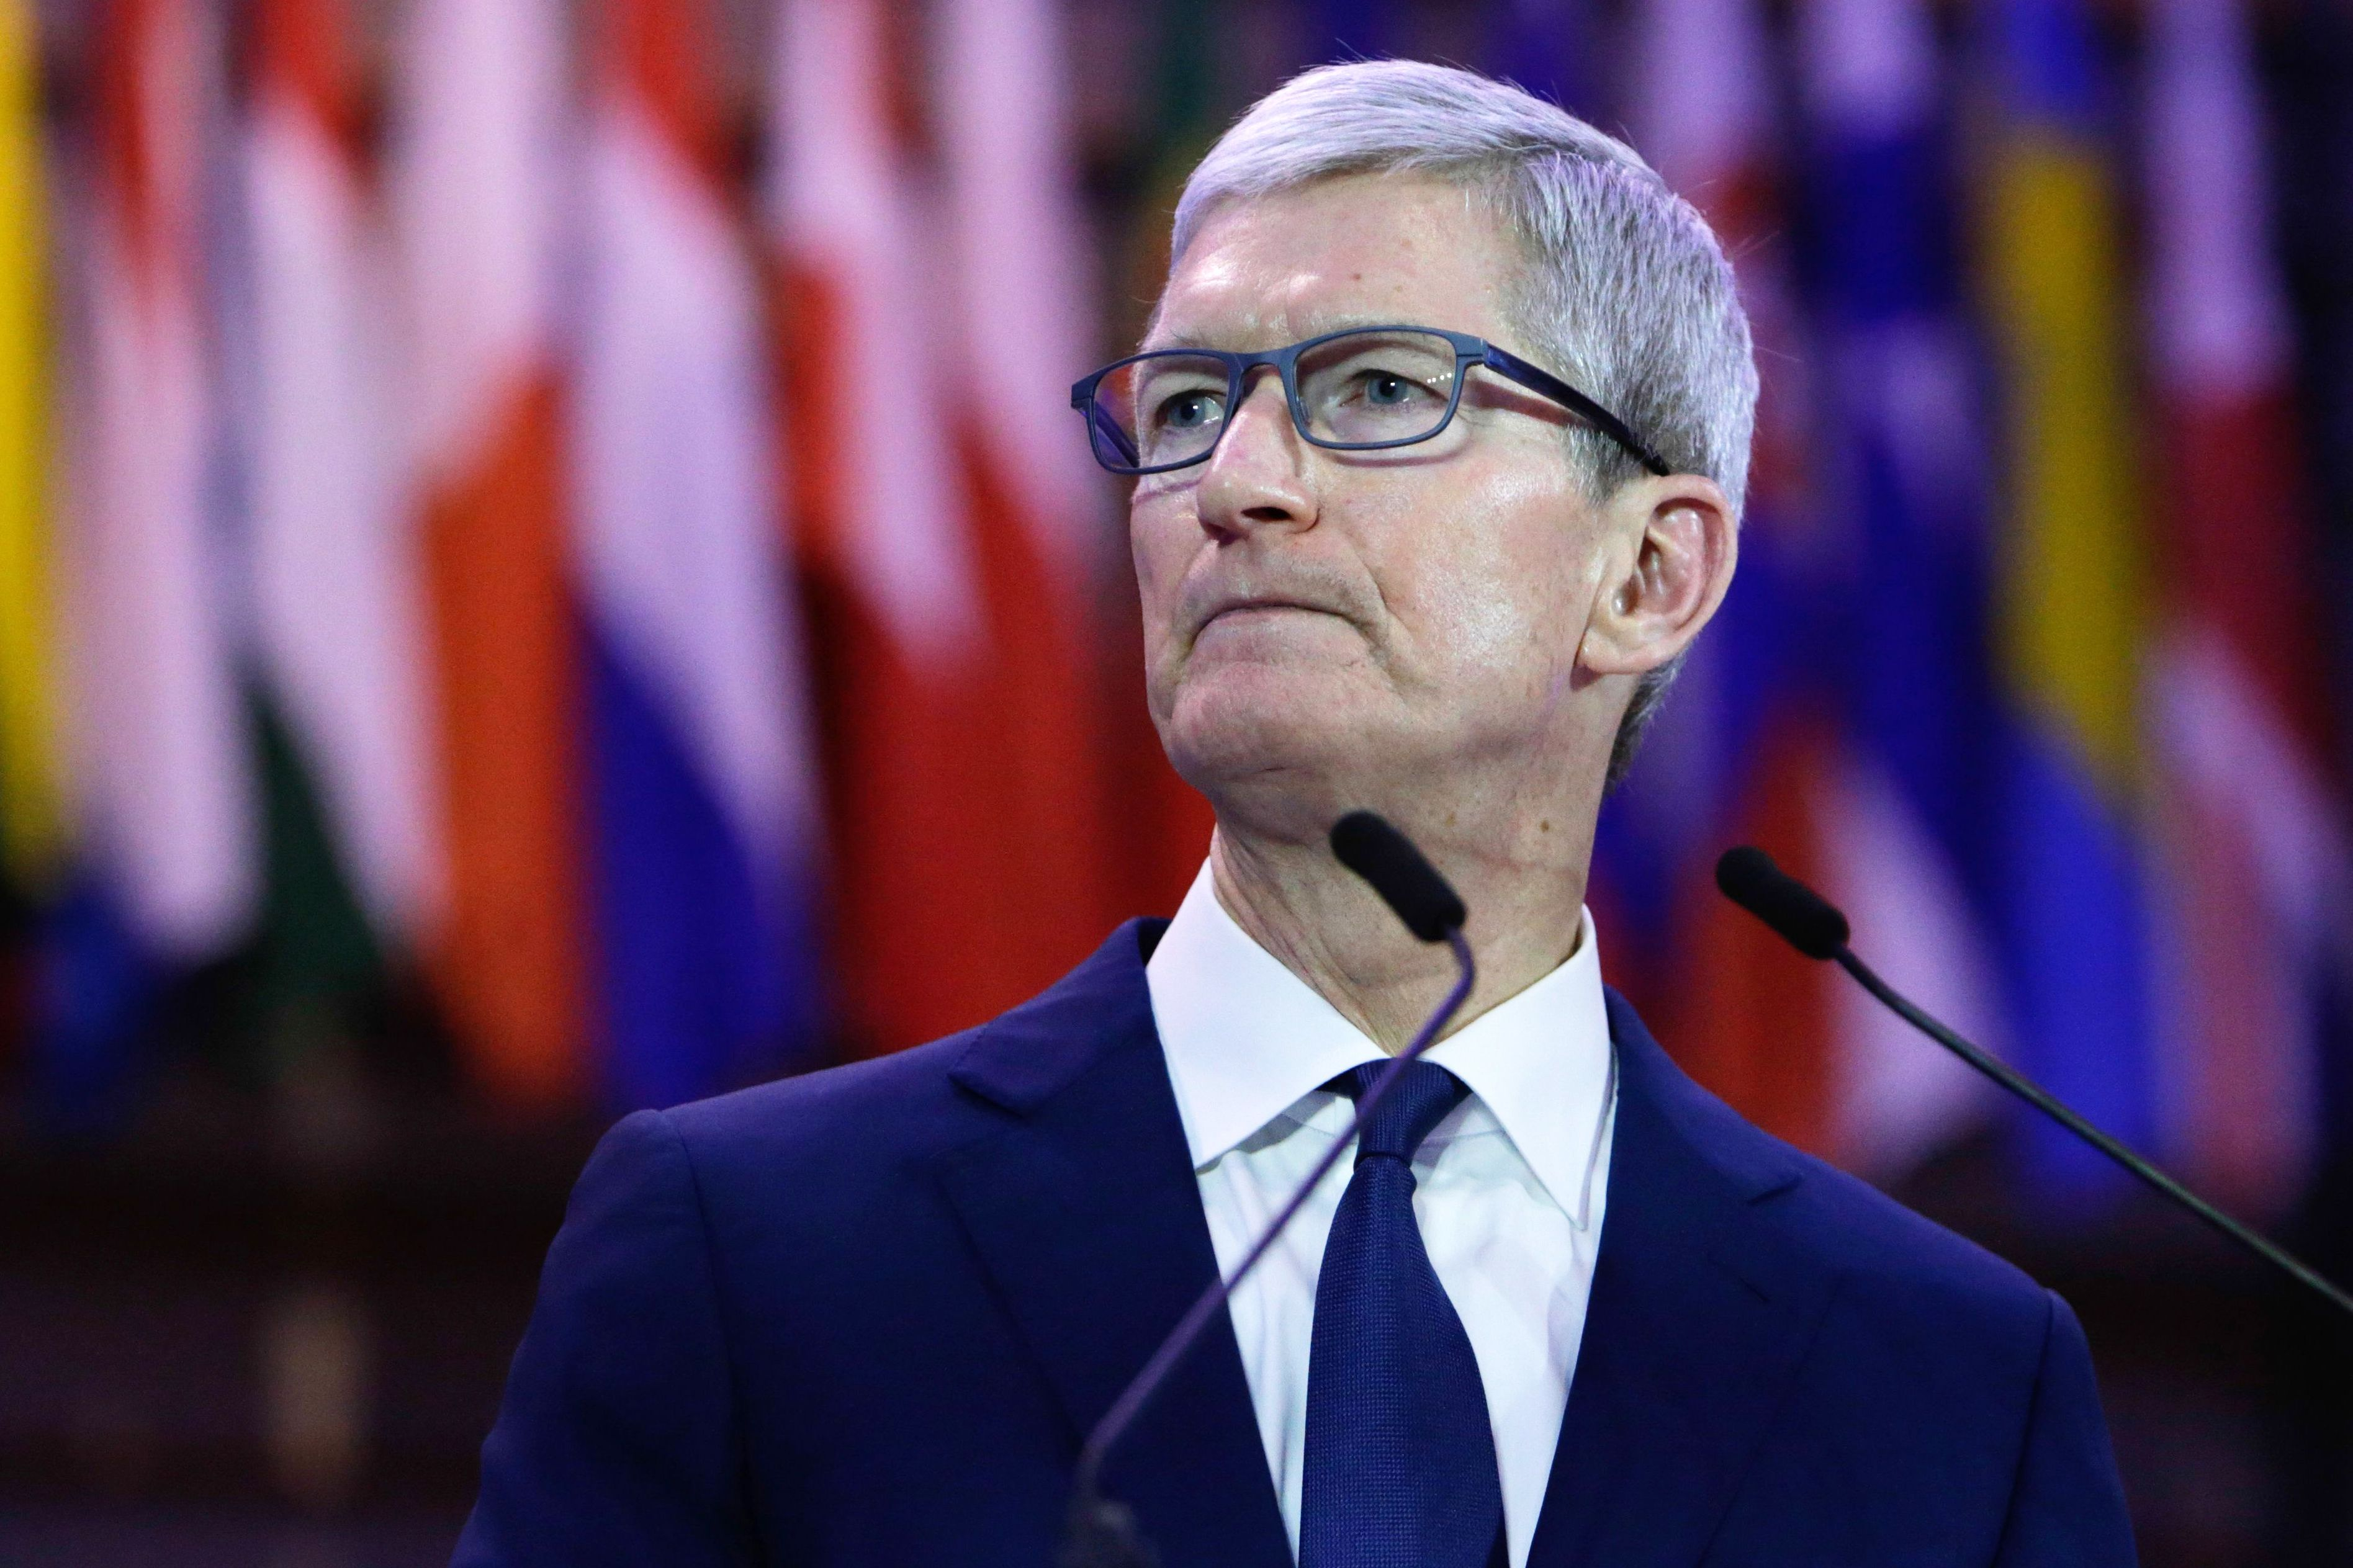 Morgan Stanley cuts price target on Apple: 'Shares to remain choppy'